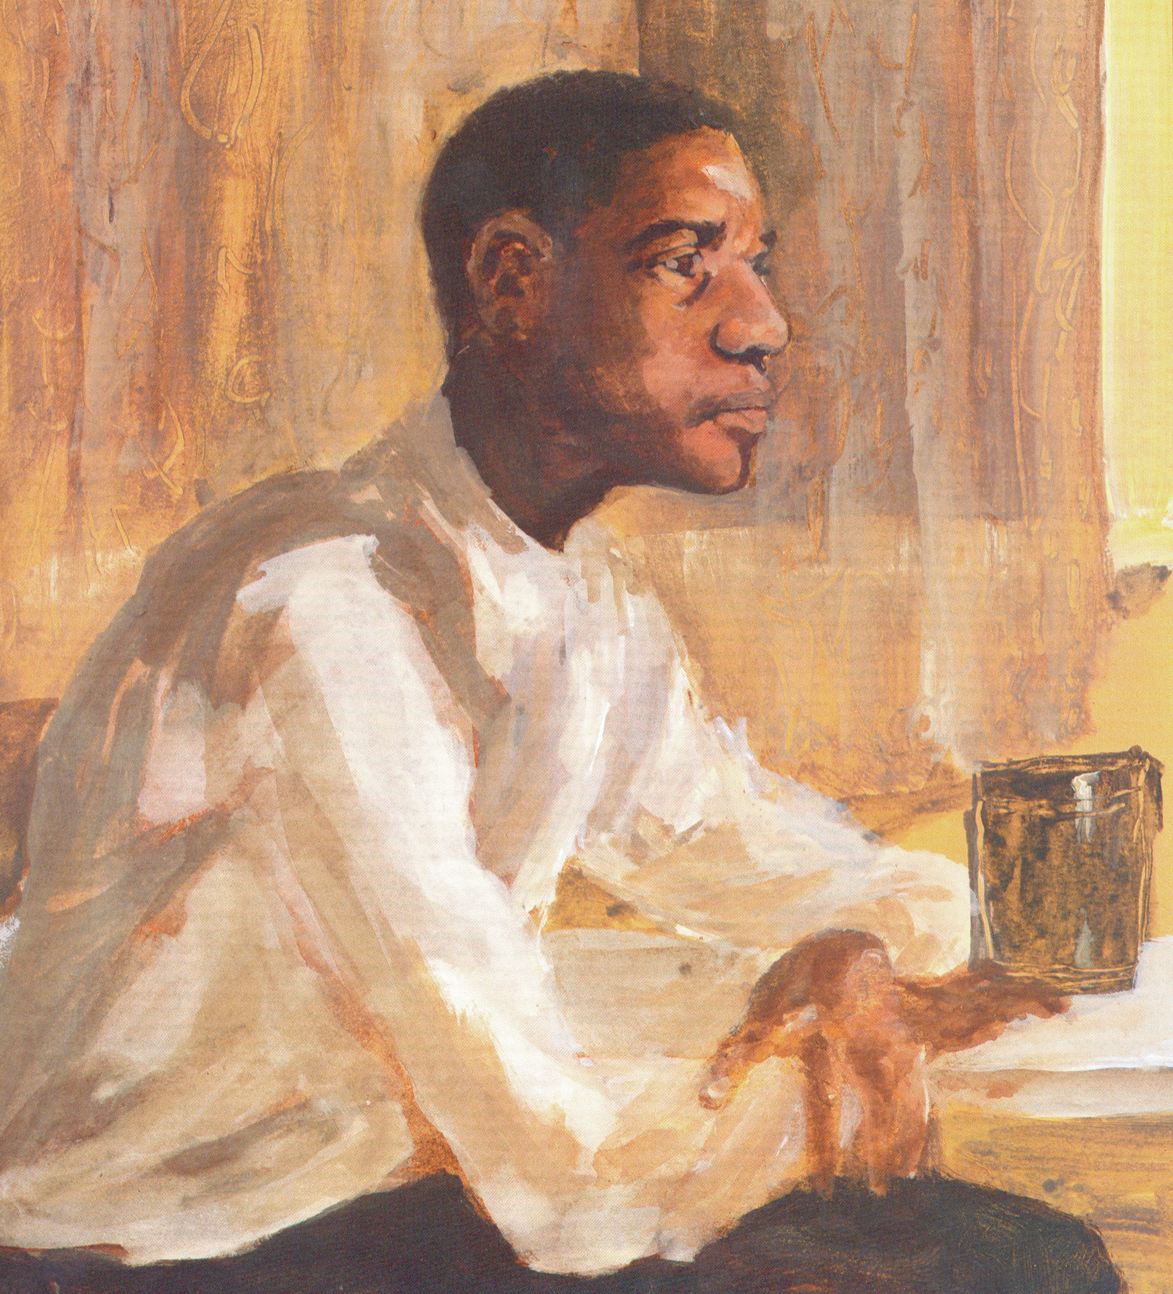 autobiographical elements in richard wrights black boy (/ r o z v l autobiographical elements in richard wrights black boy t / roh-z-velt.